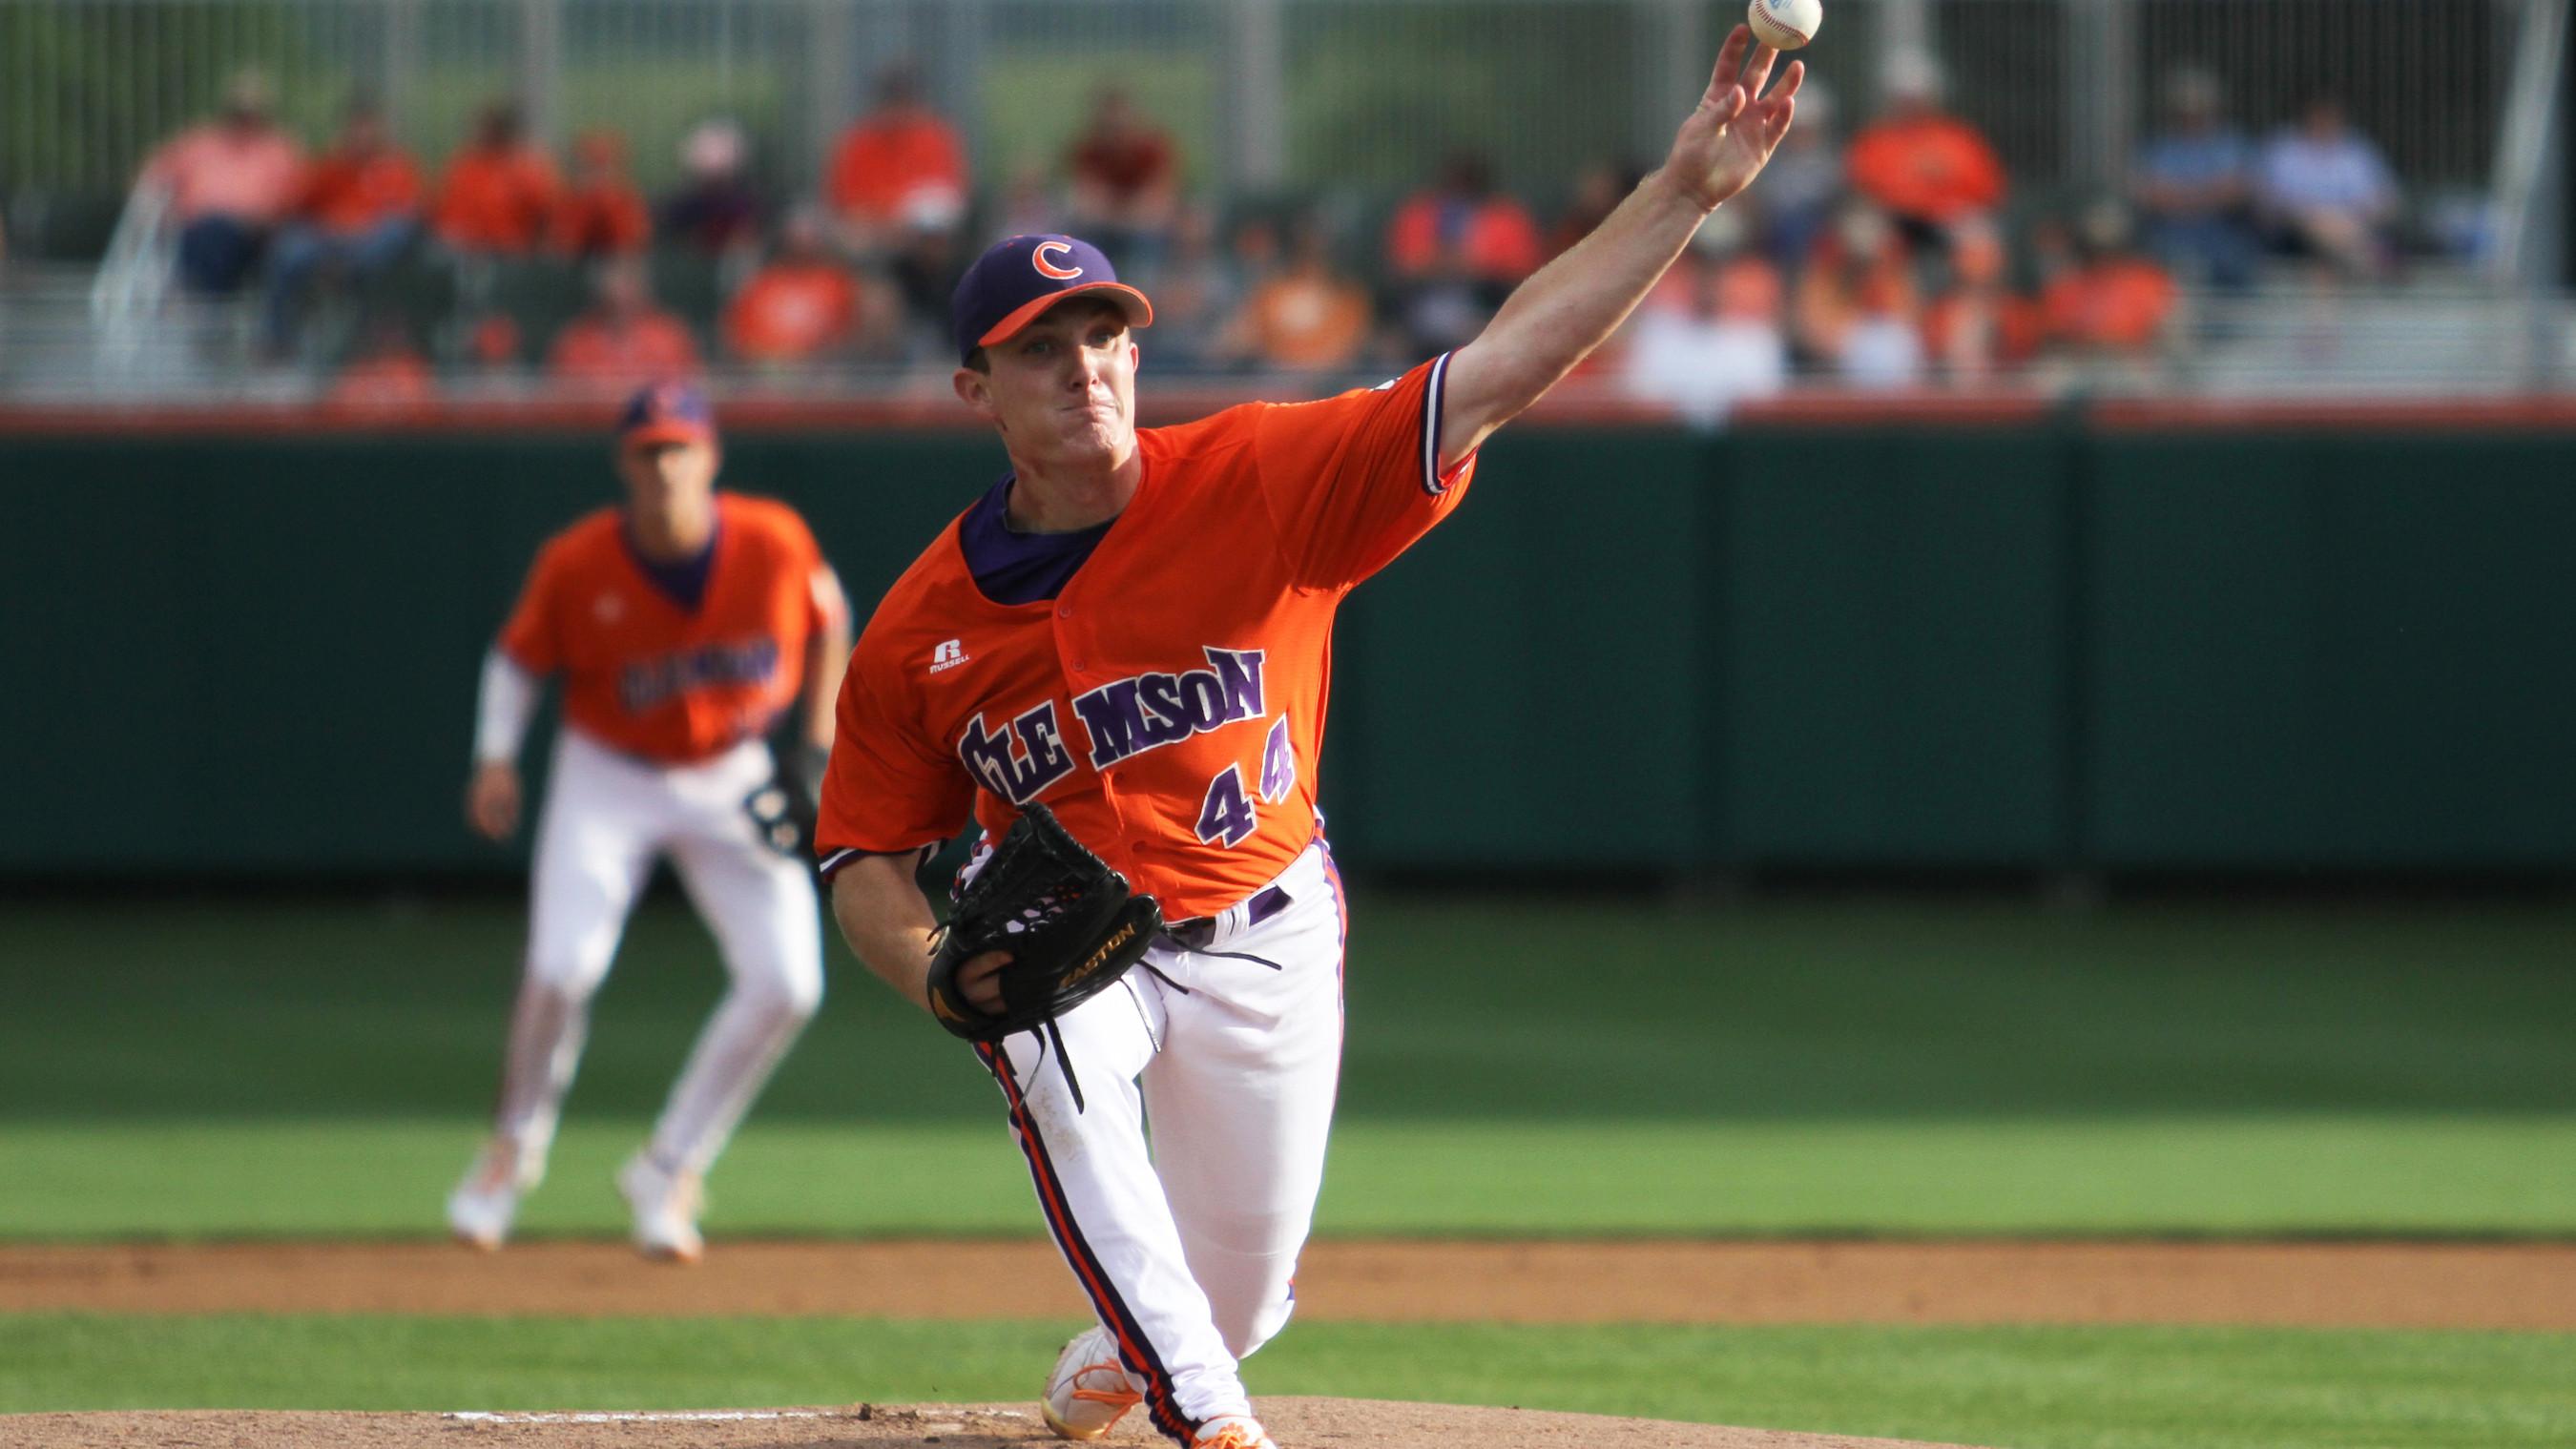 Crownover Named ACC Pitcher of the Week